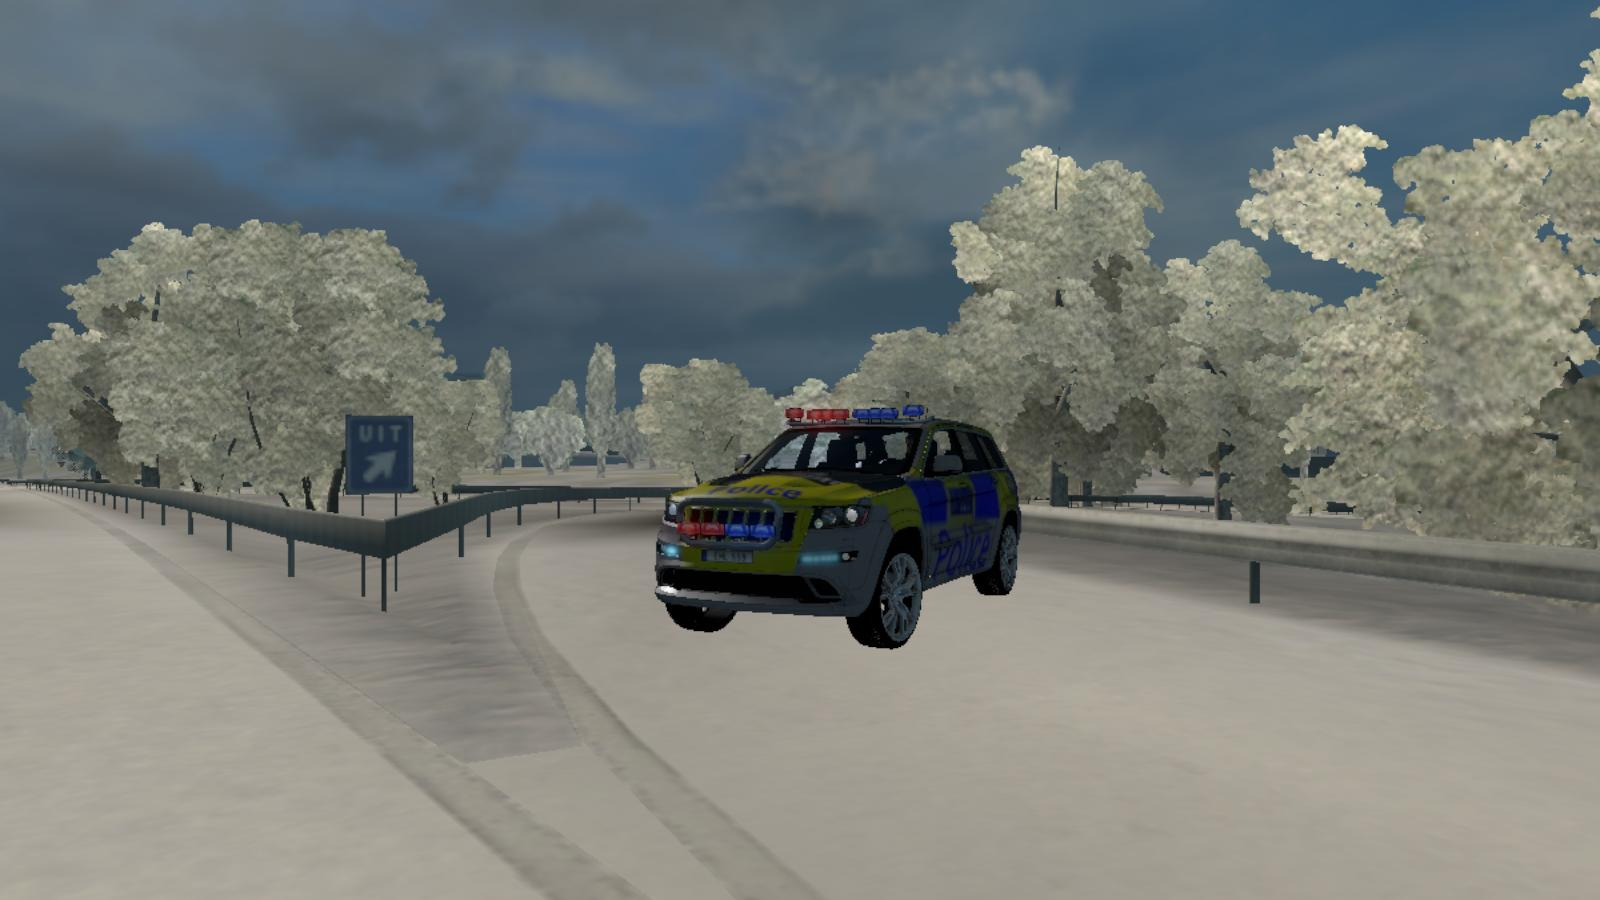 Police Jeep Uk 1 22 X Car Euro Truck Simulator 2 Mods